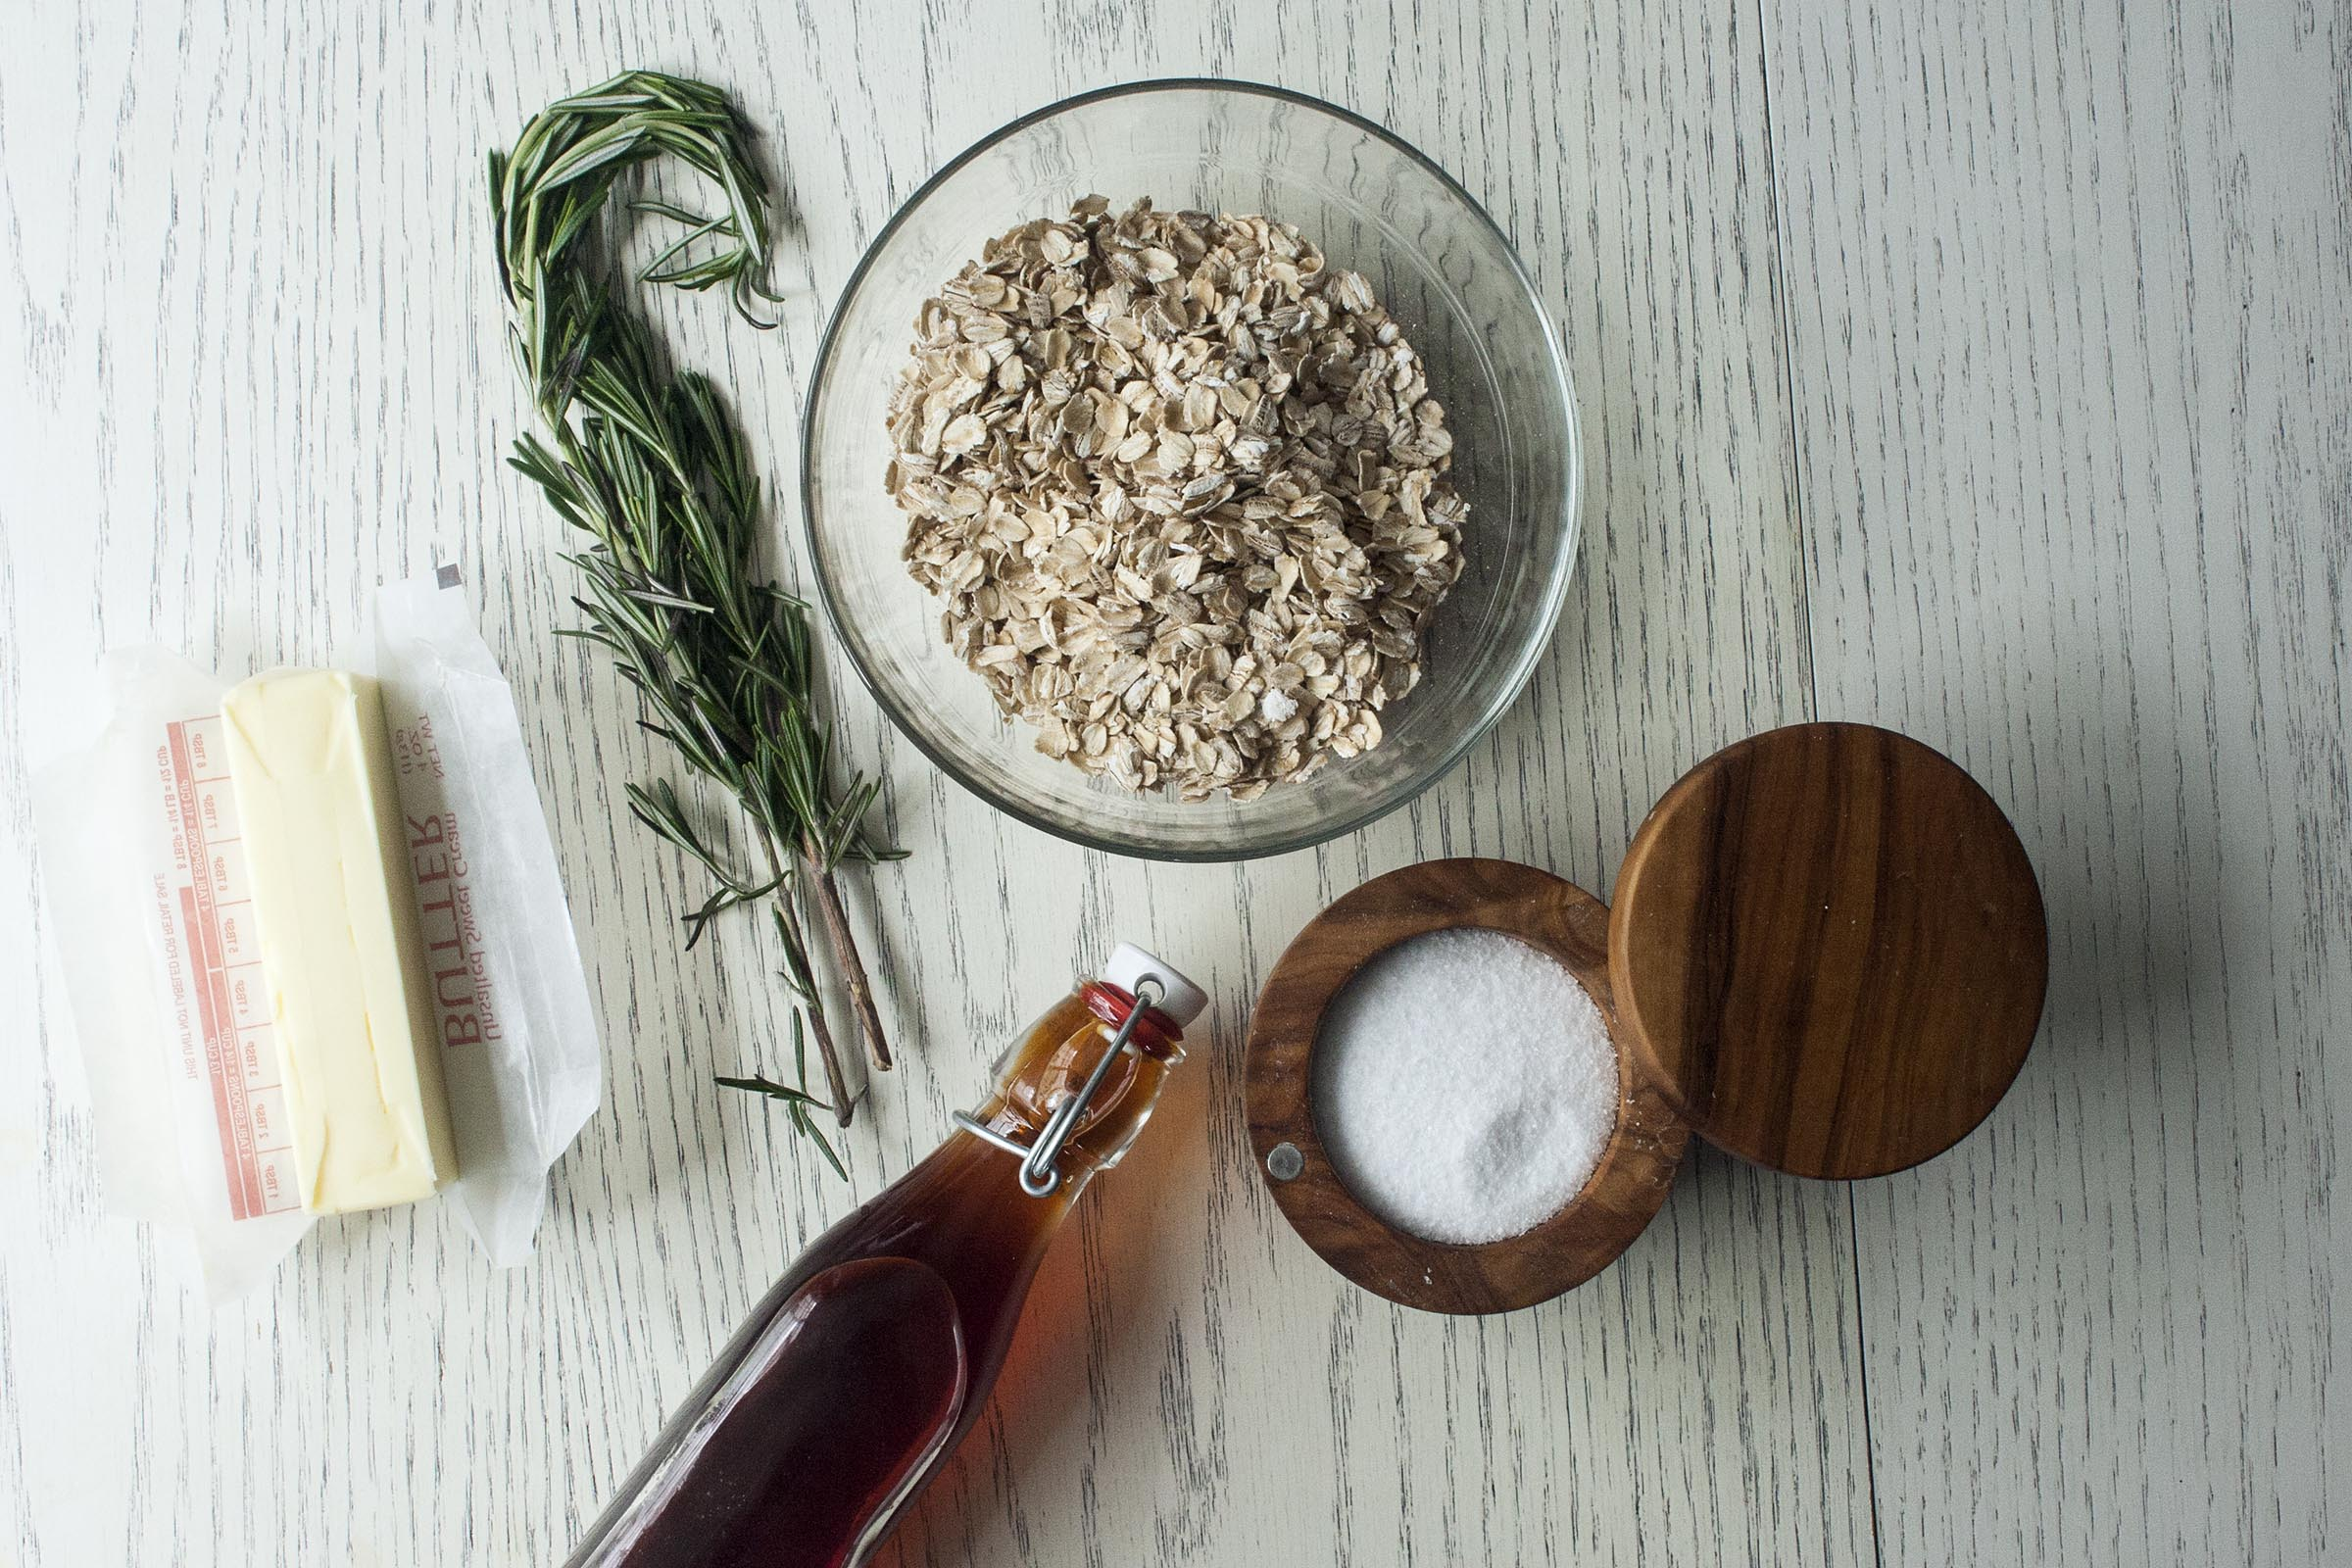 Butter Salted Rosemary Oat Bark Ingredients. www.lifeaswecookit.com